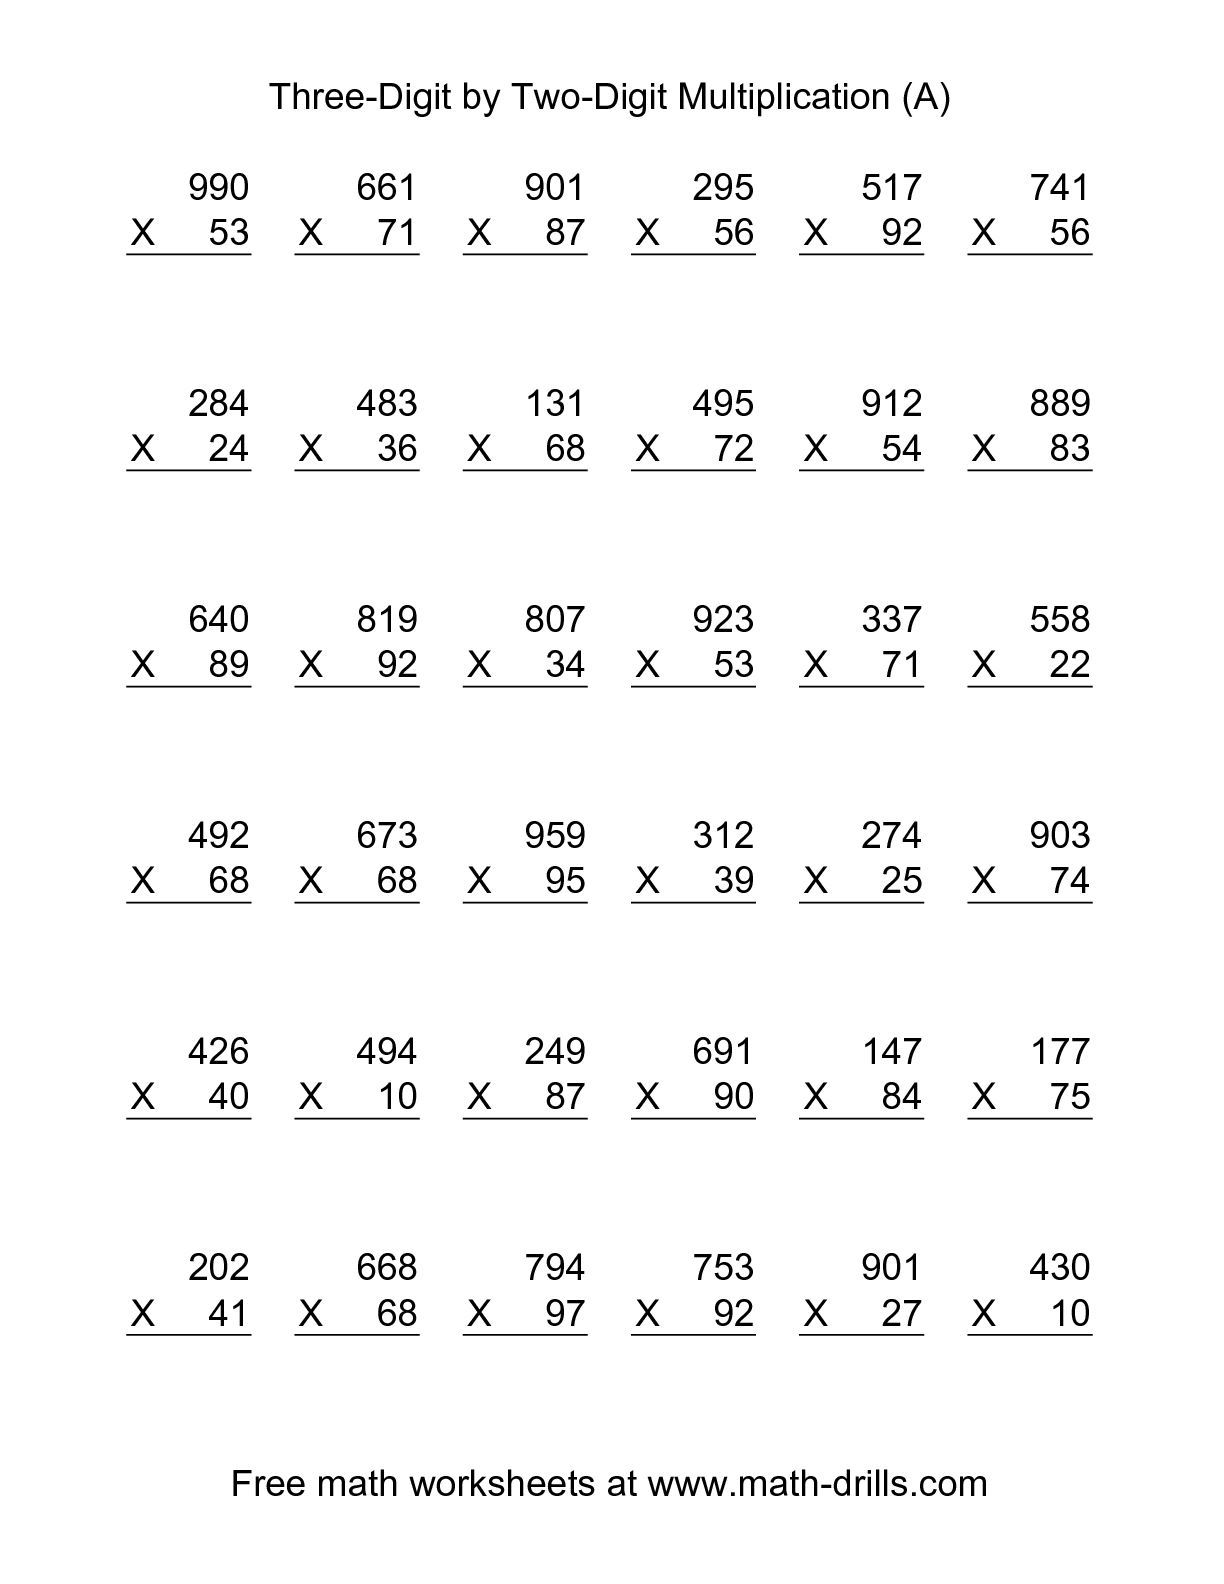 worksheet Multiplying Two Digit Numbers Worksheet the multiplying three digit by two 36 per page a math multiplication worksheet per